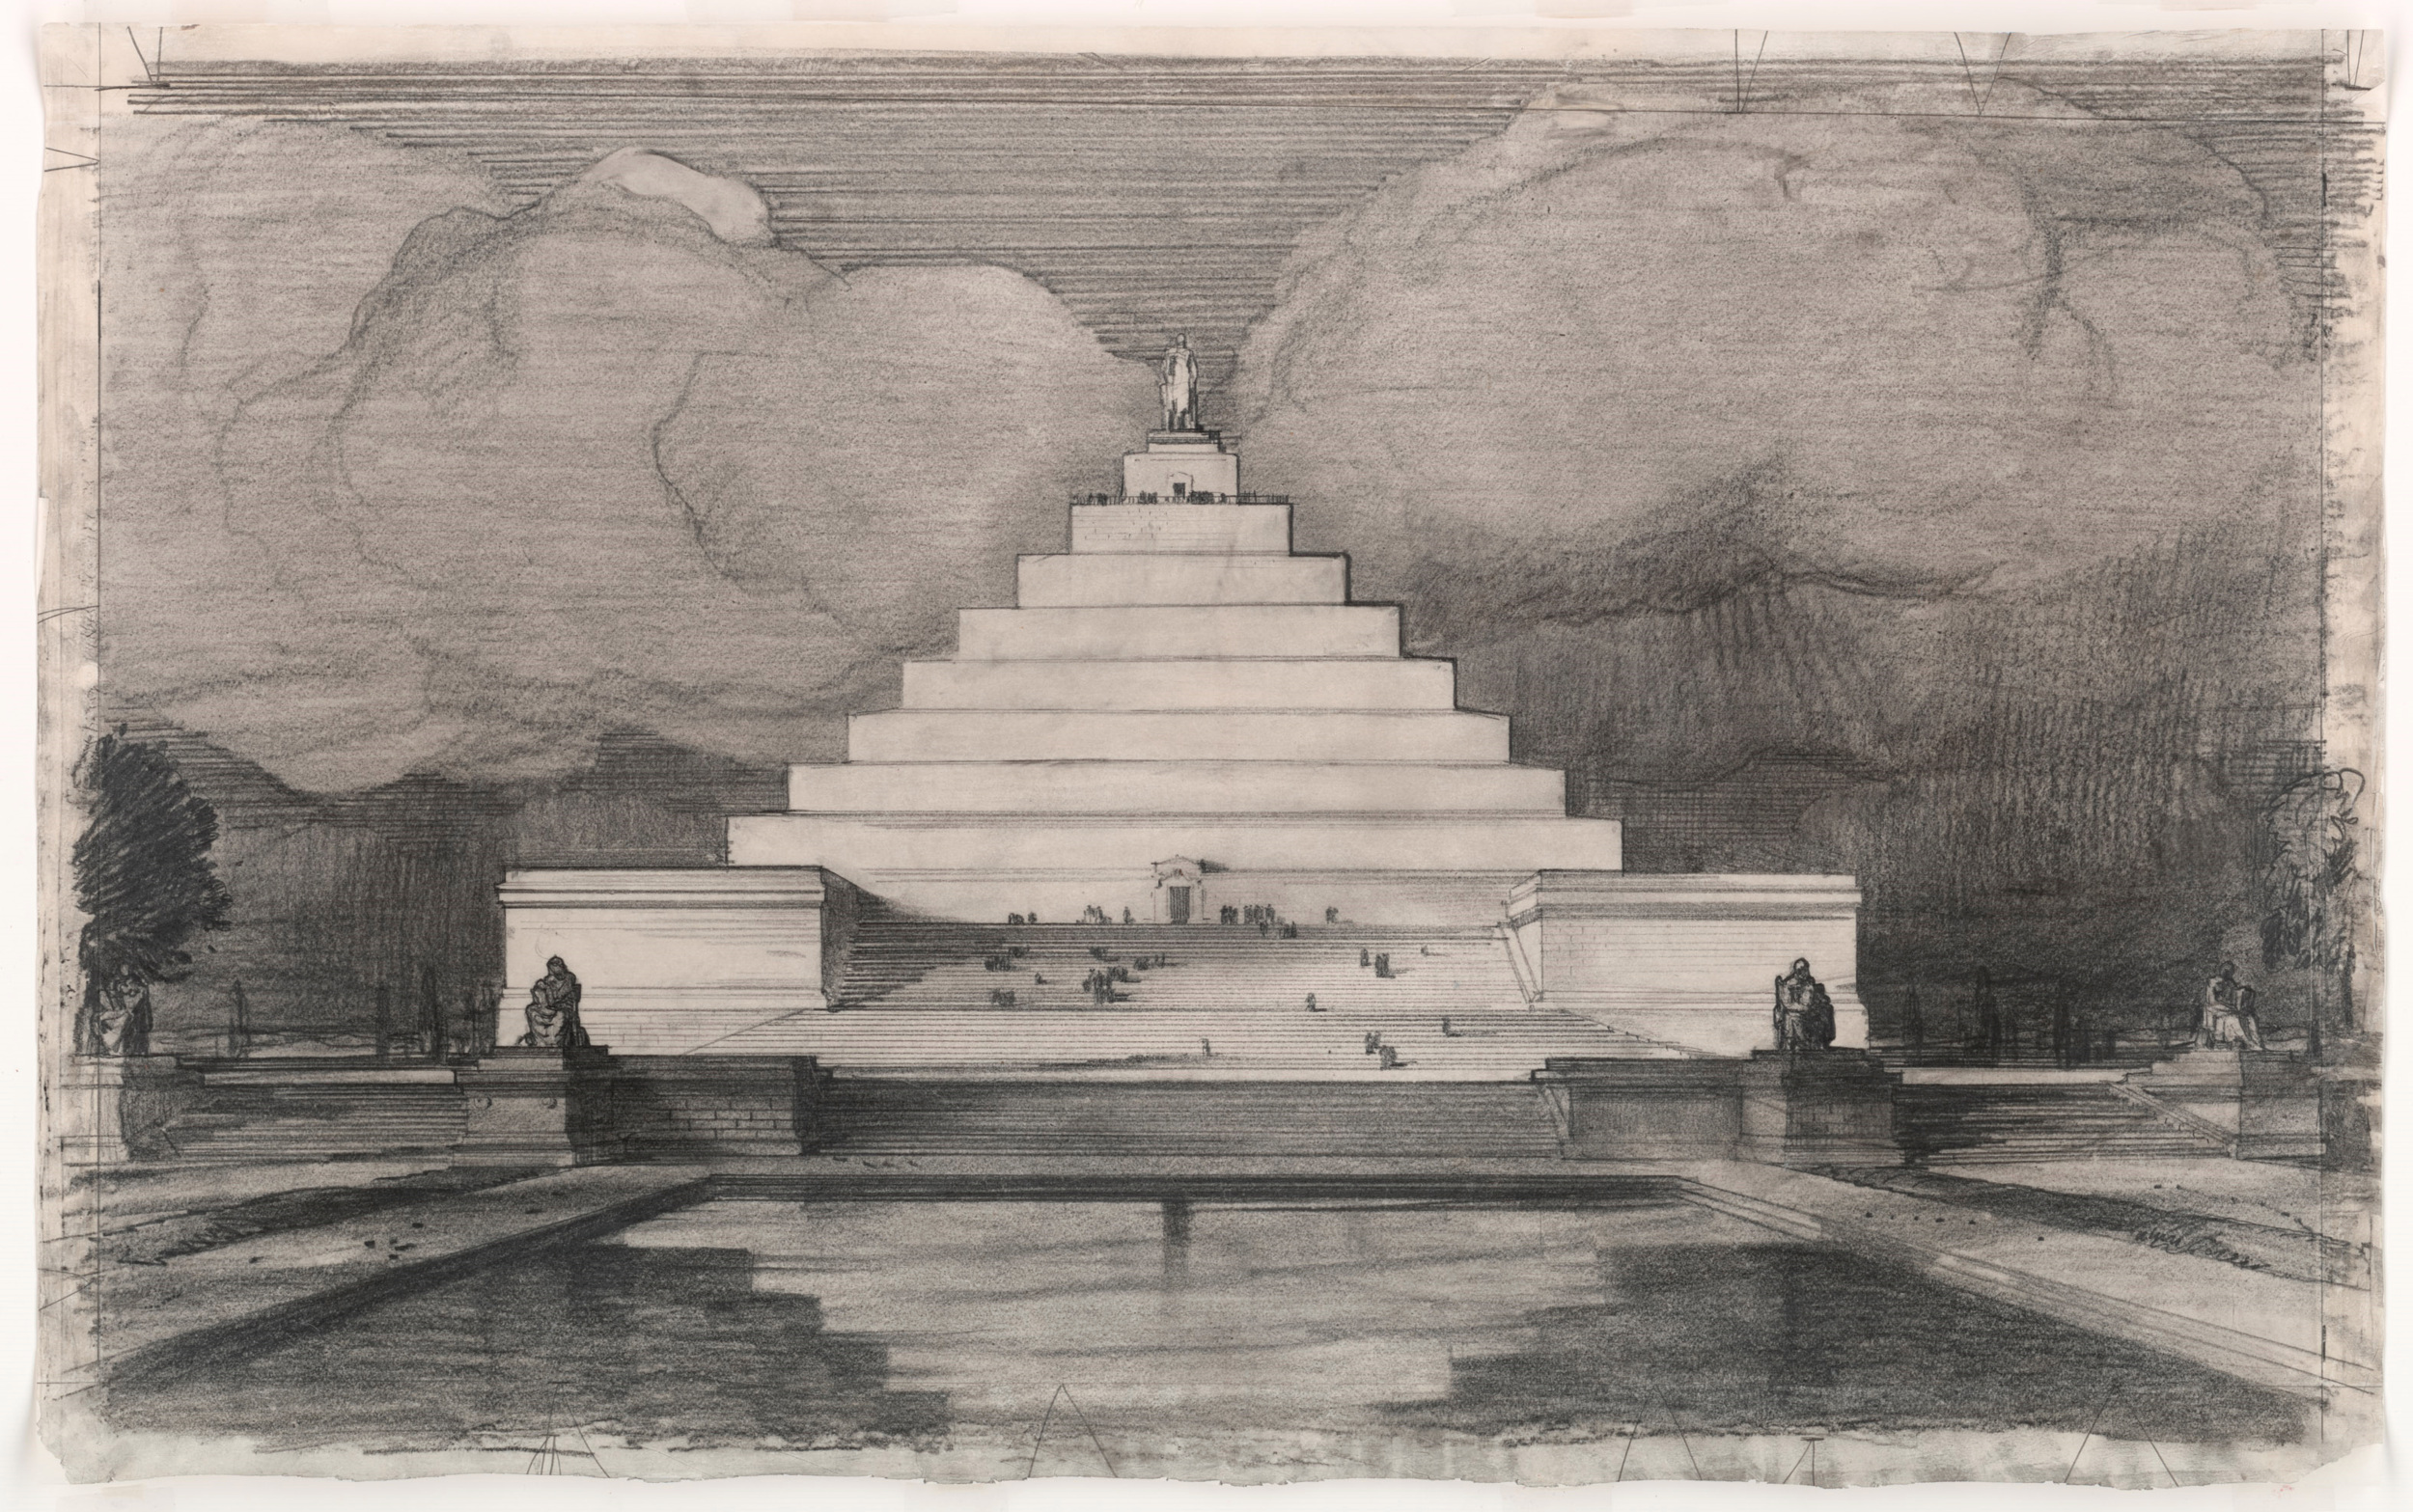 Famed American architect John Russell Pope submitted this design in the competition for a Lincoln Memorial. He envisioned it sited on Meridian Hill in Washington, D.C.